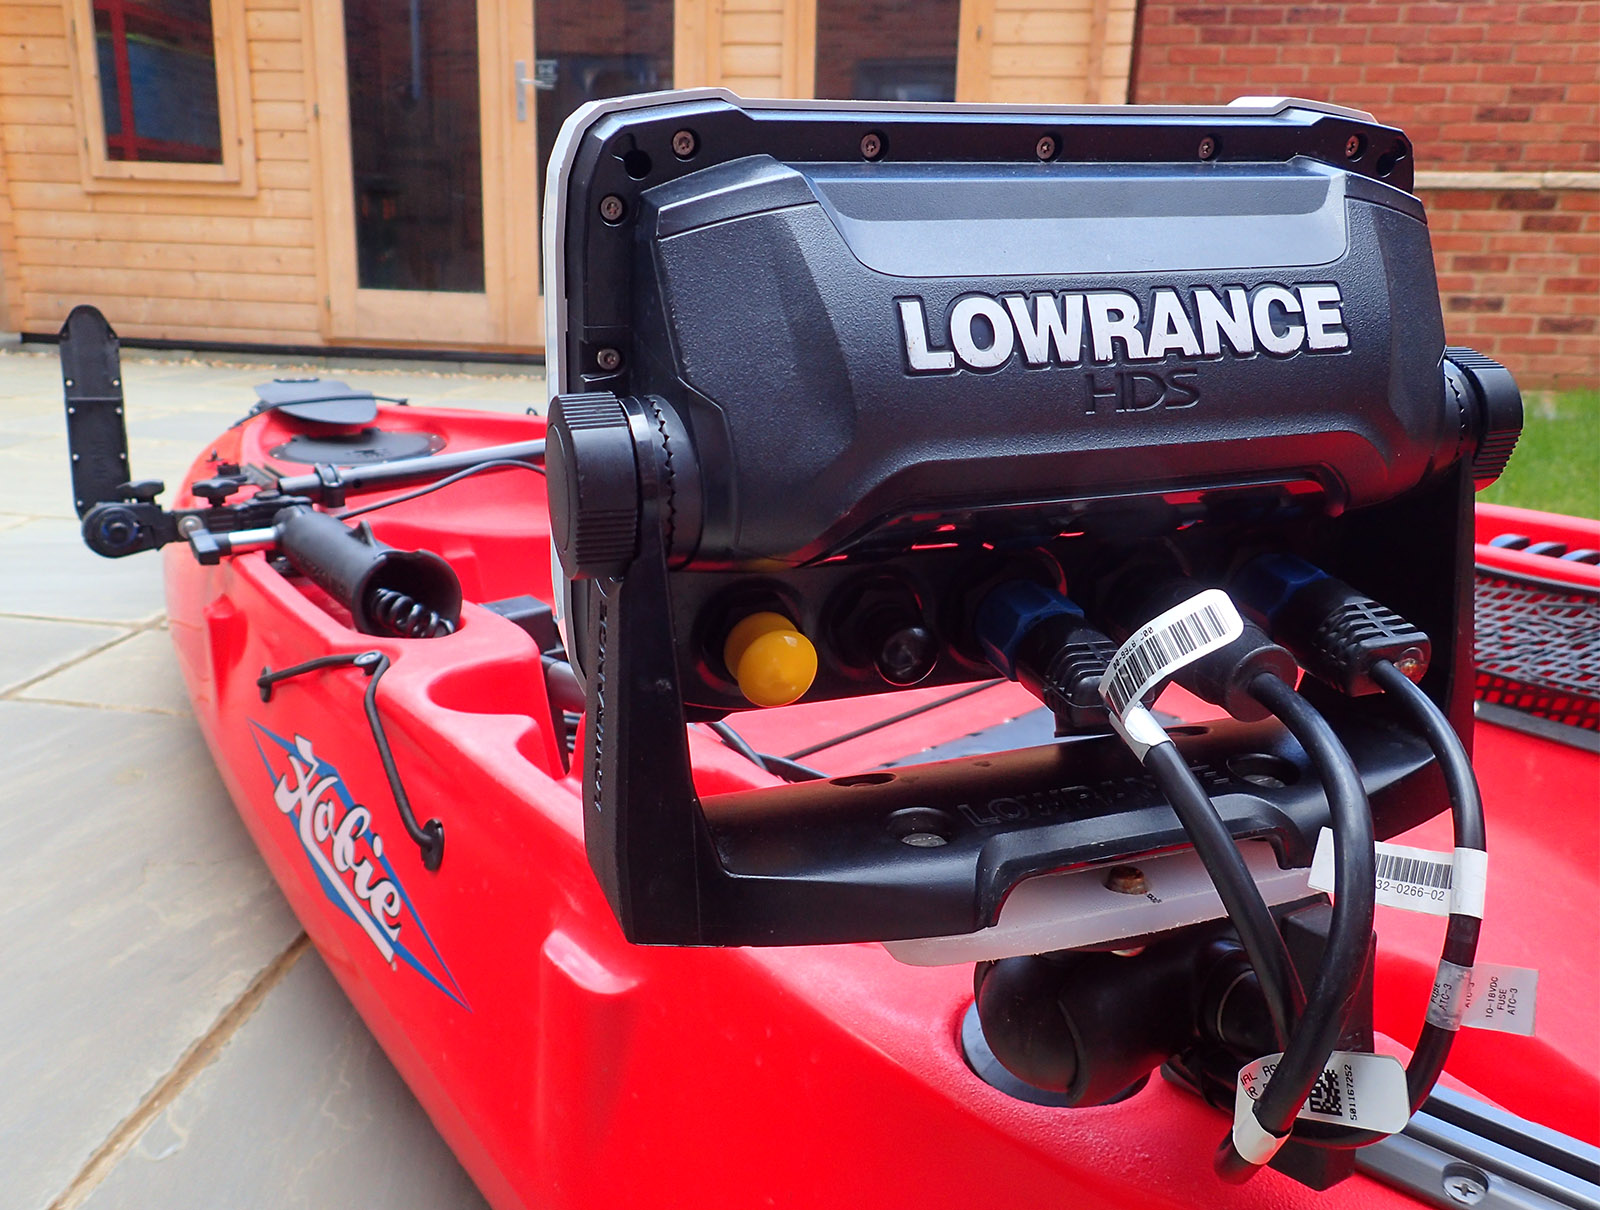 Saltwater Kayak Fisherman Upgrade Lowrance Totalscan All In One Wiring To Vhf Radio Fitting The Transducer Would Result Loss Off Swing Arm Assembly Lss2 Plus Its Cabling And 83 200khz Broadband Sonar